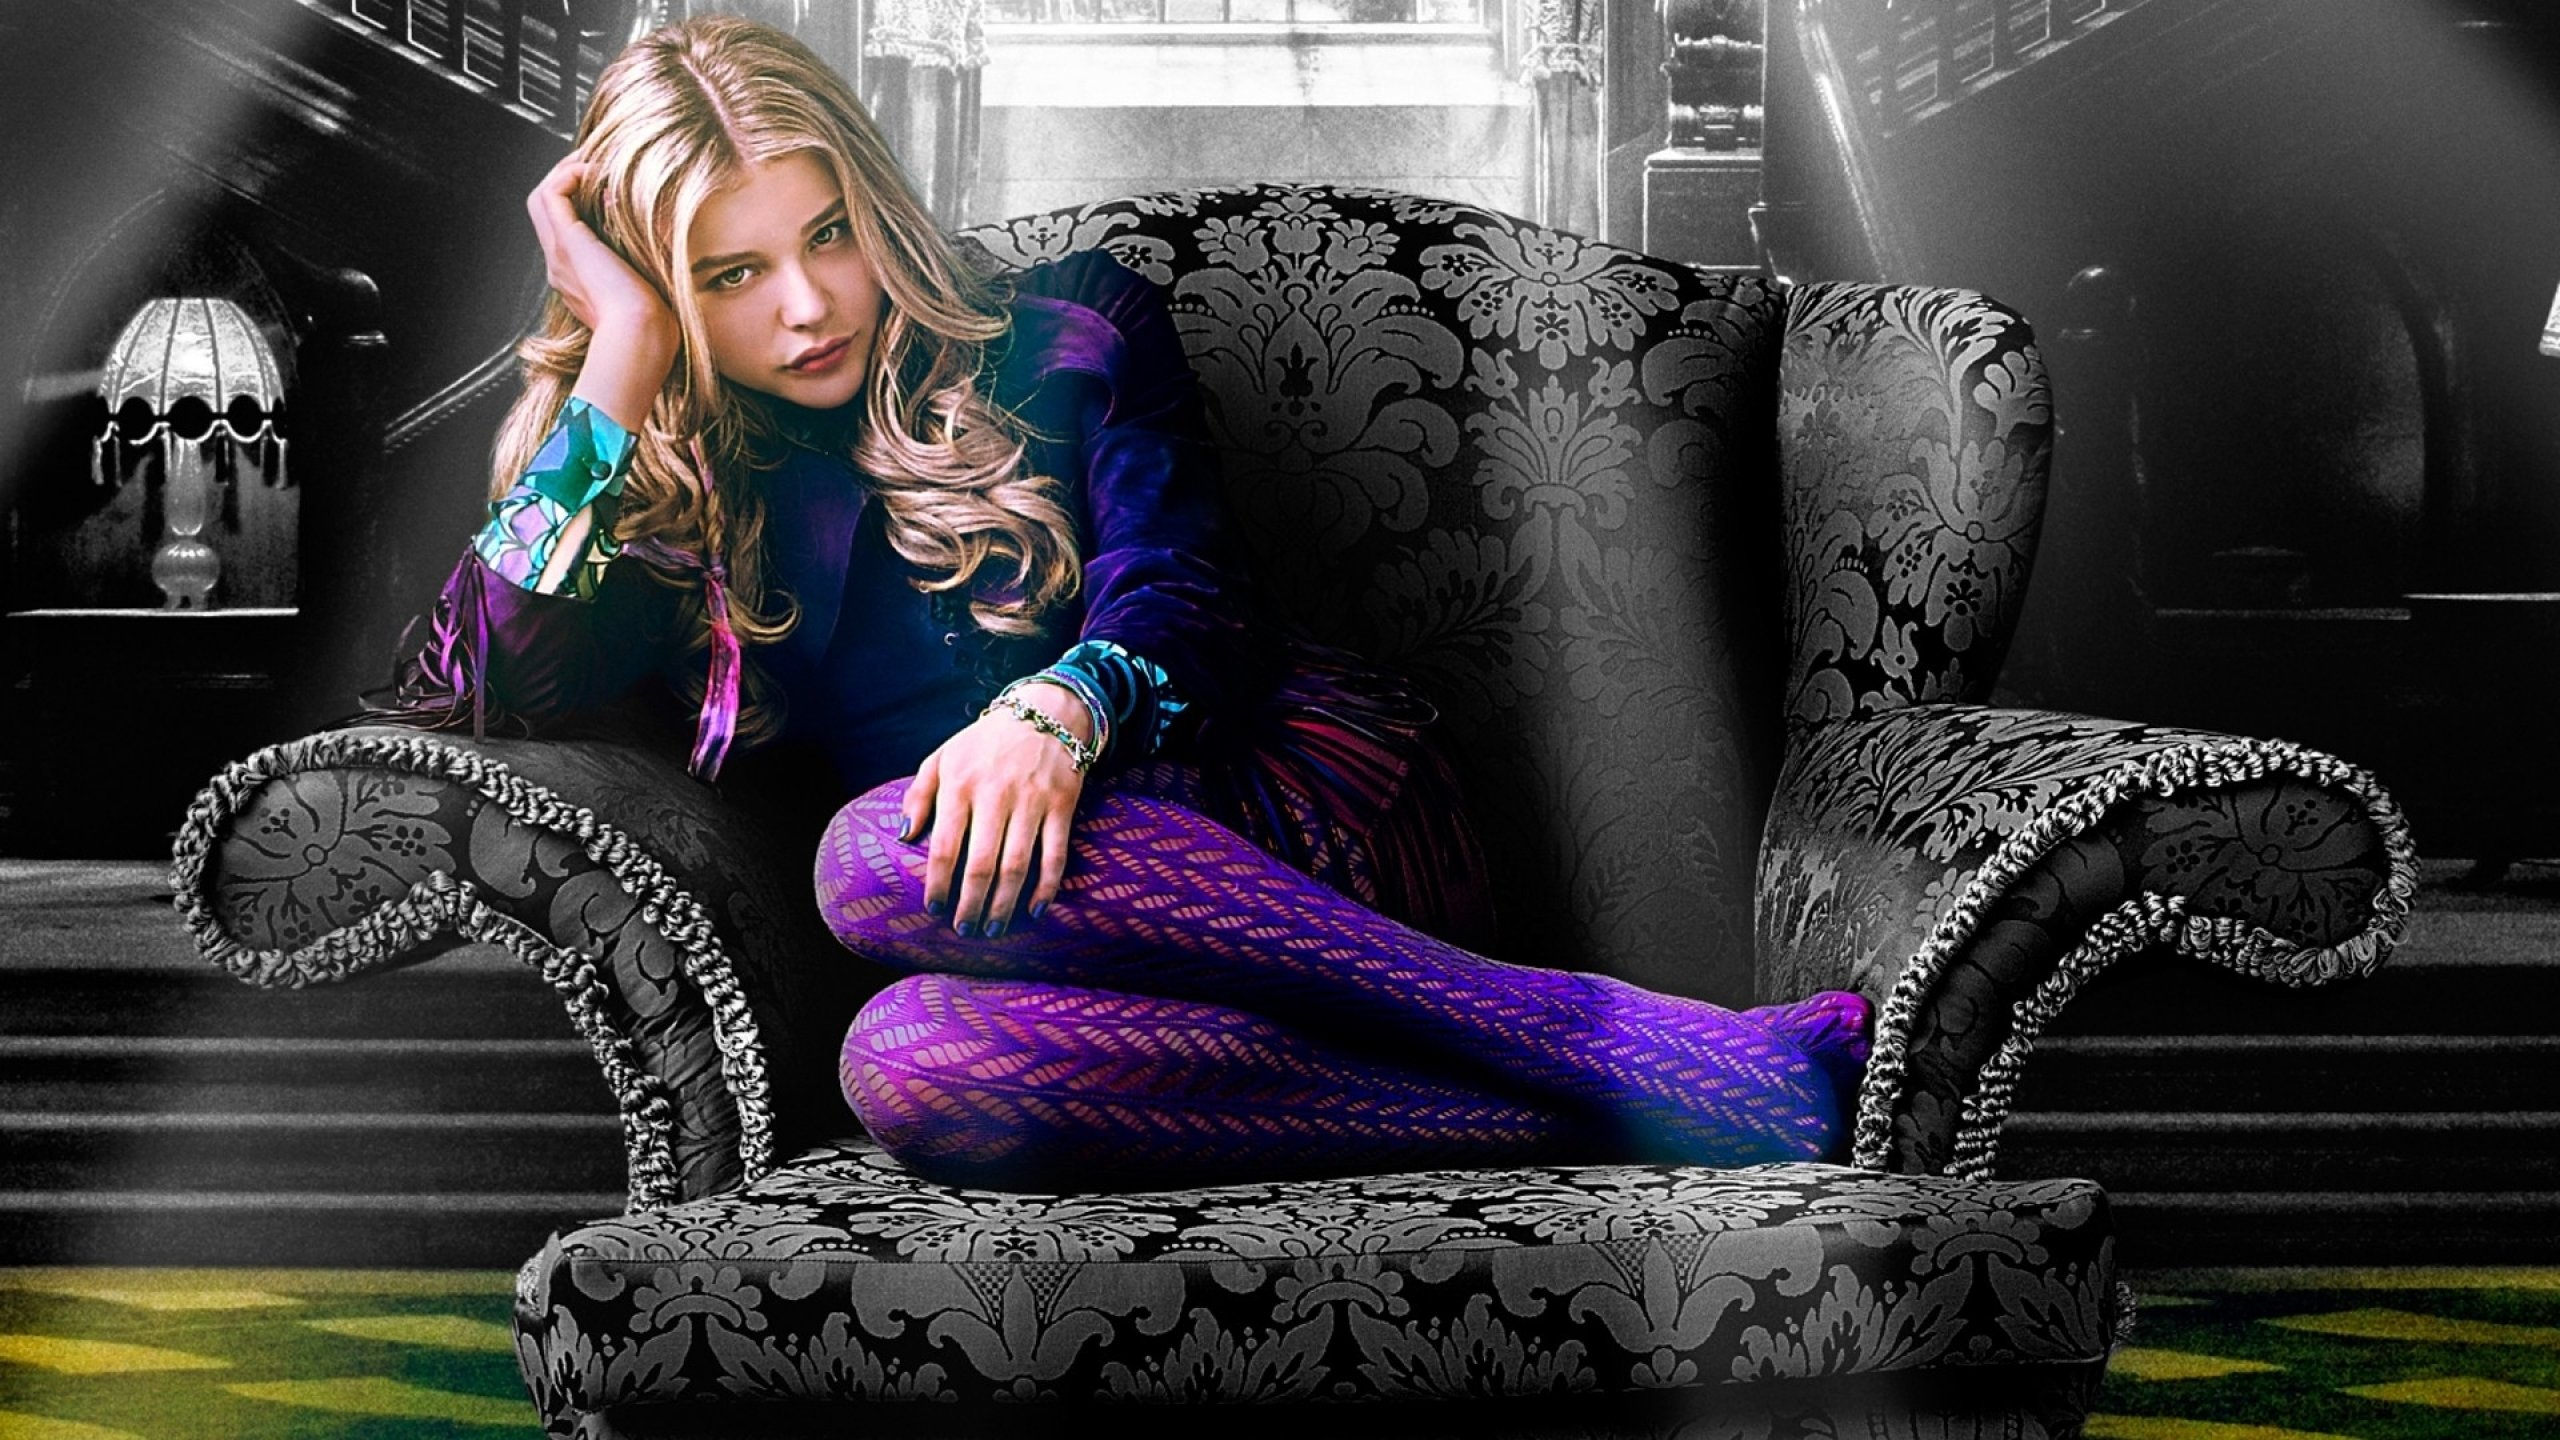 Download hd 2560x1440 Chloe Grace Moretz computer background ID:213675 for free